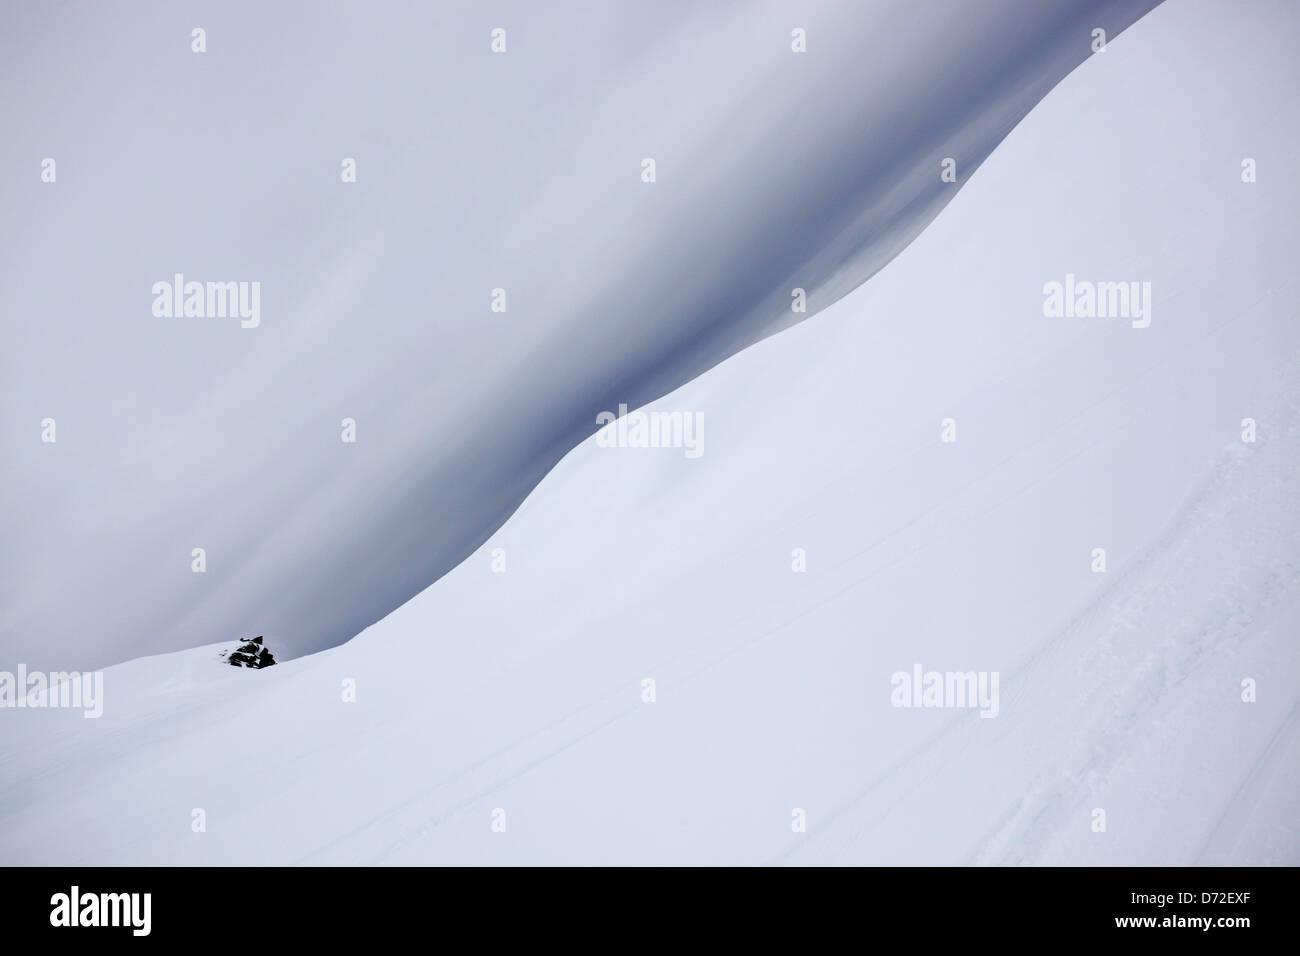 Abstract photo from a skiing holiday in the French Alps - Stock Image